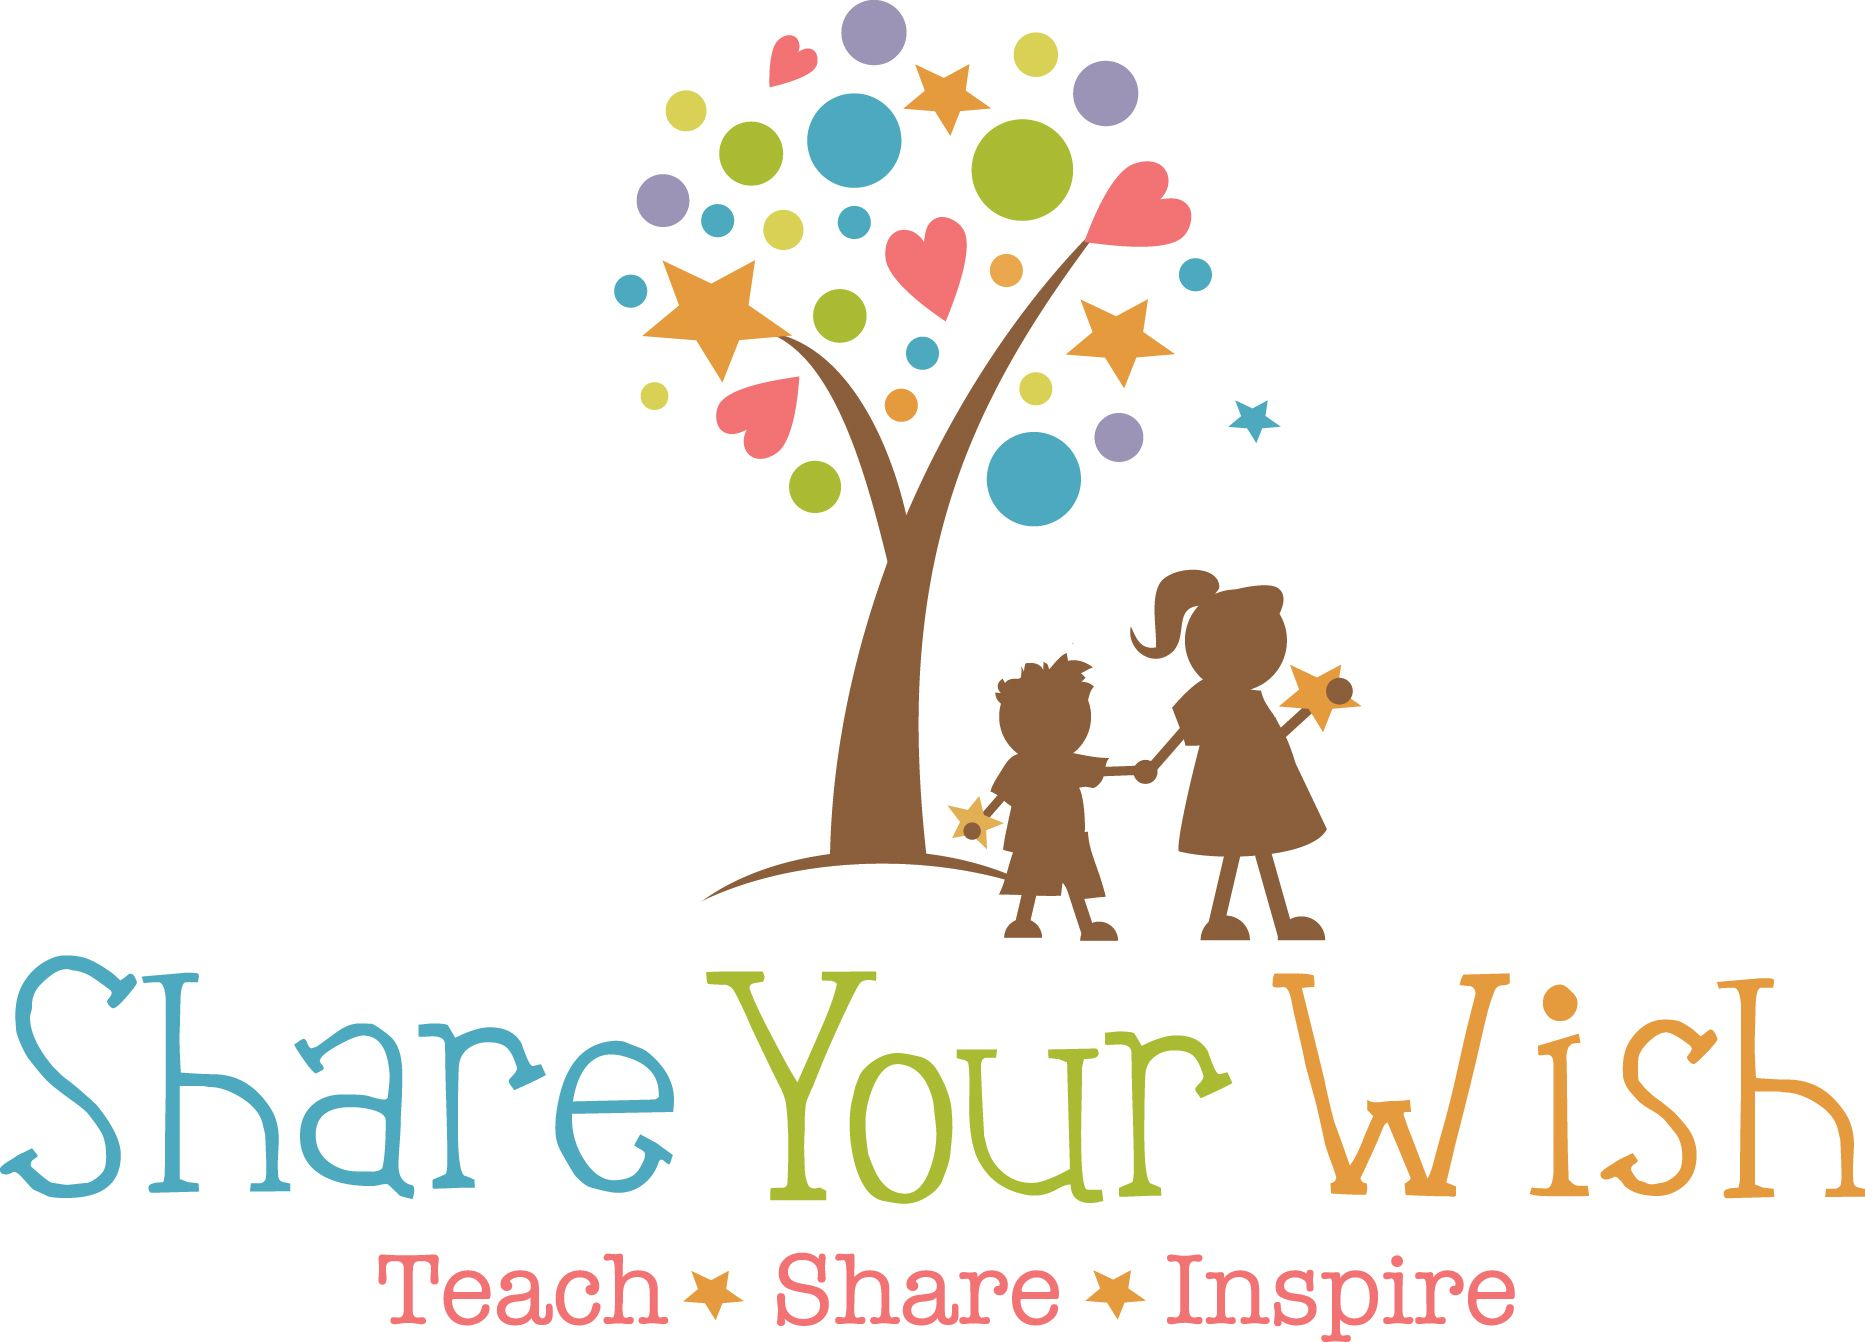 Share Your Wish! Use promo code SYW3 for your free $20 gift!